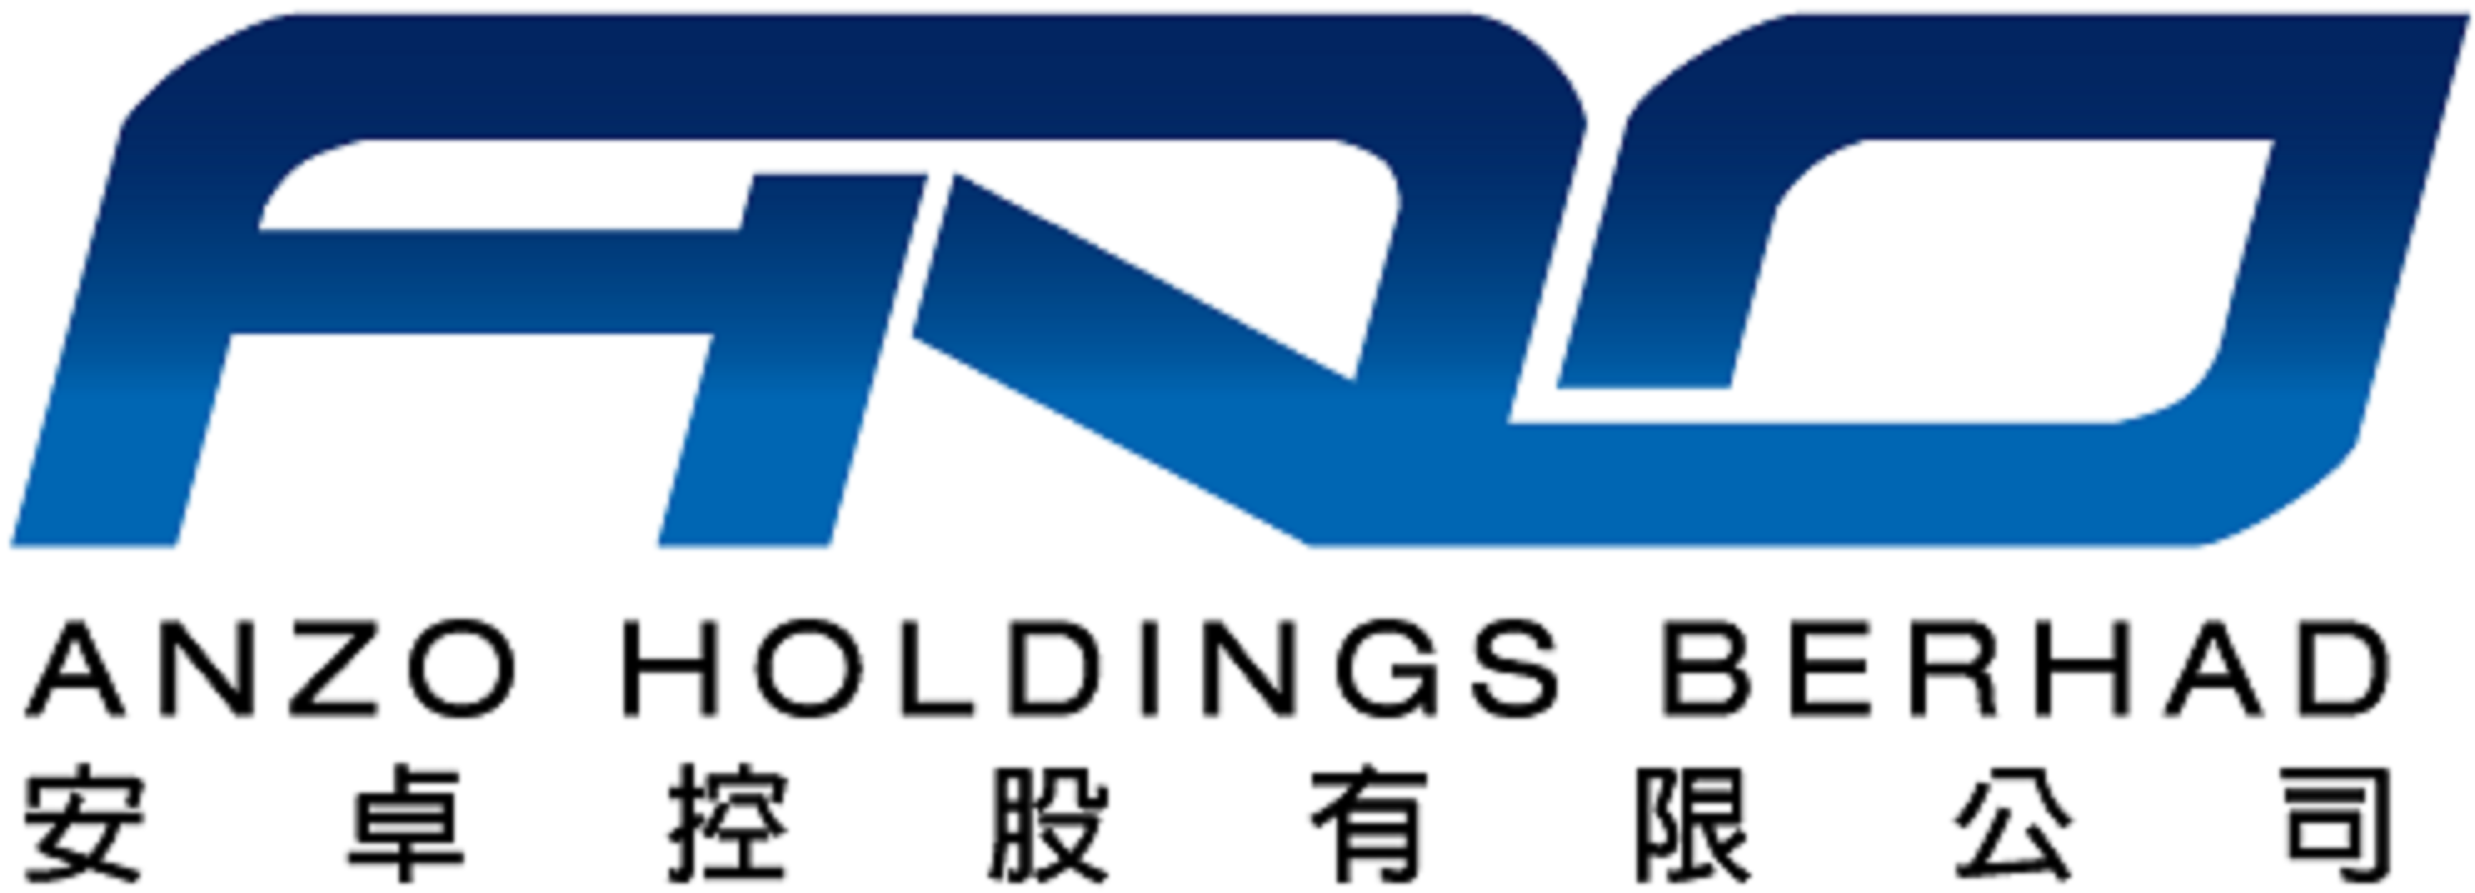 Anzo Holdings Bhd Most Actively Traded Stock on Bursa Malaysia